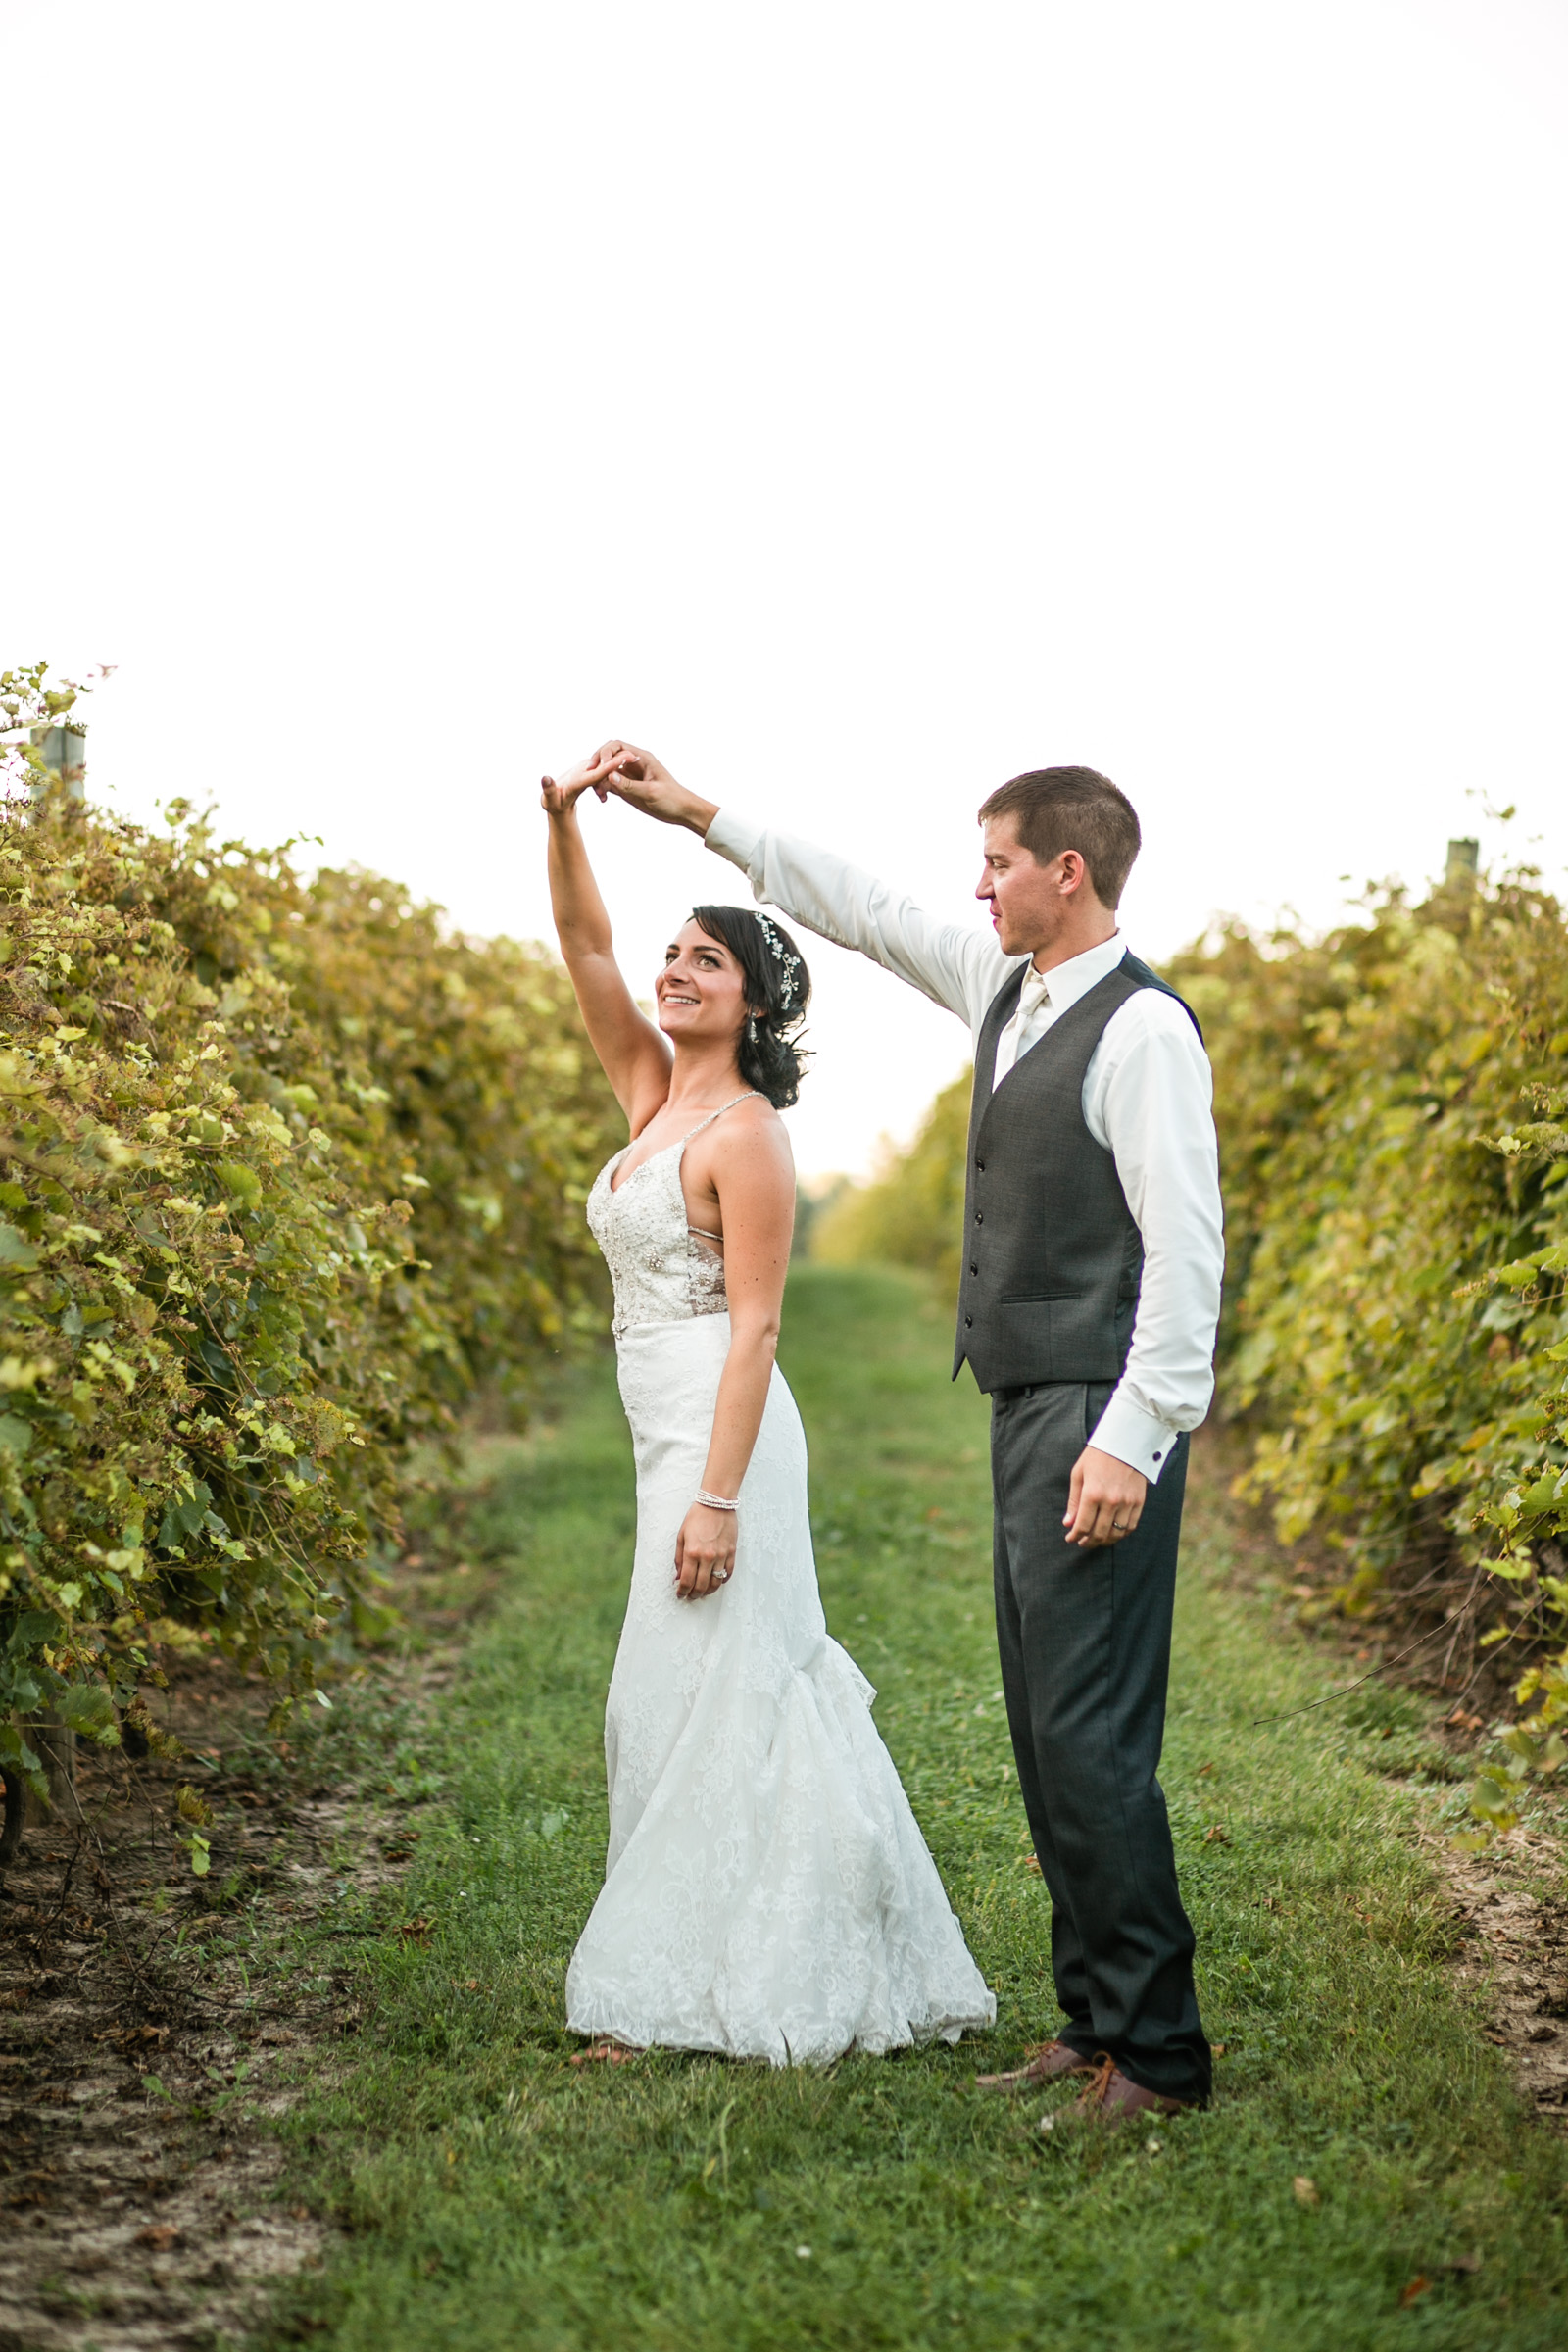 bride dancing outside with husband at vineyard wedding sunset